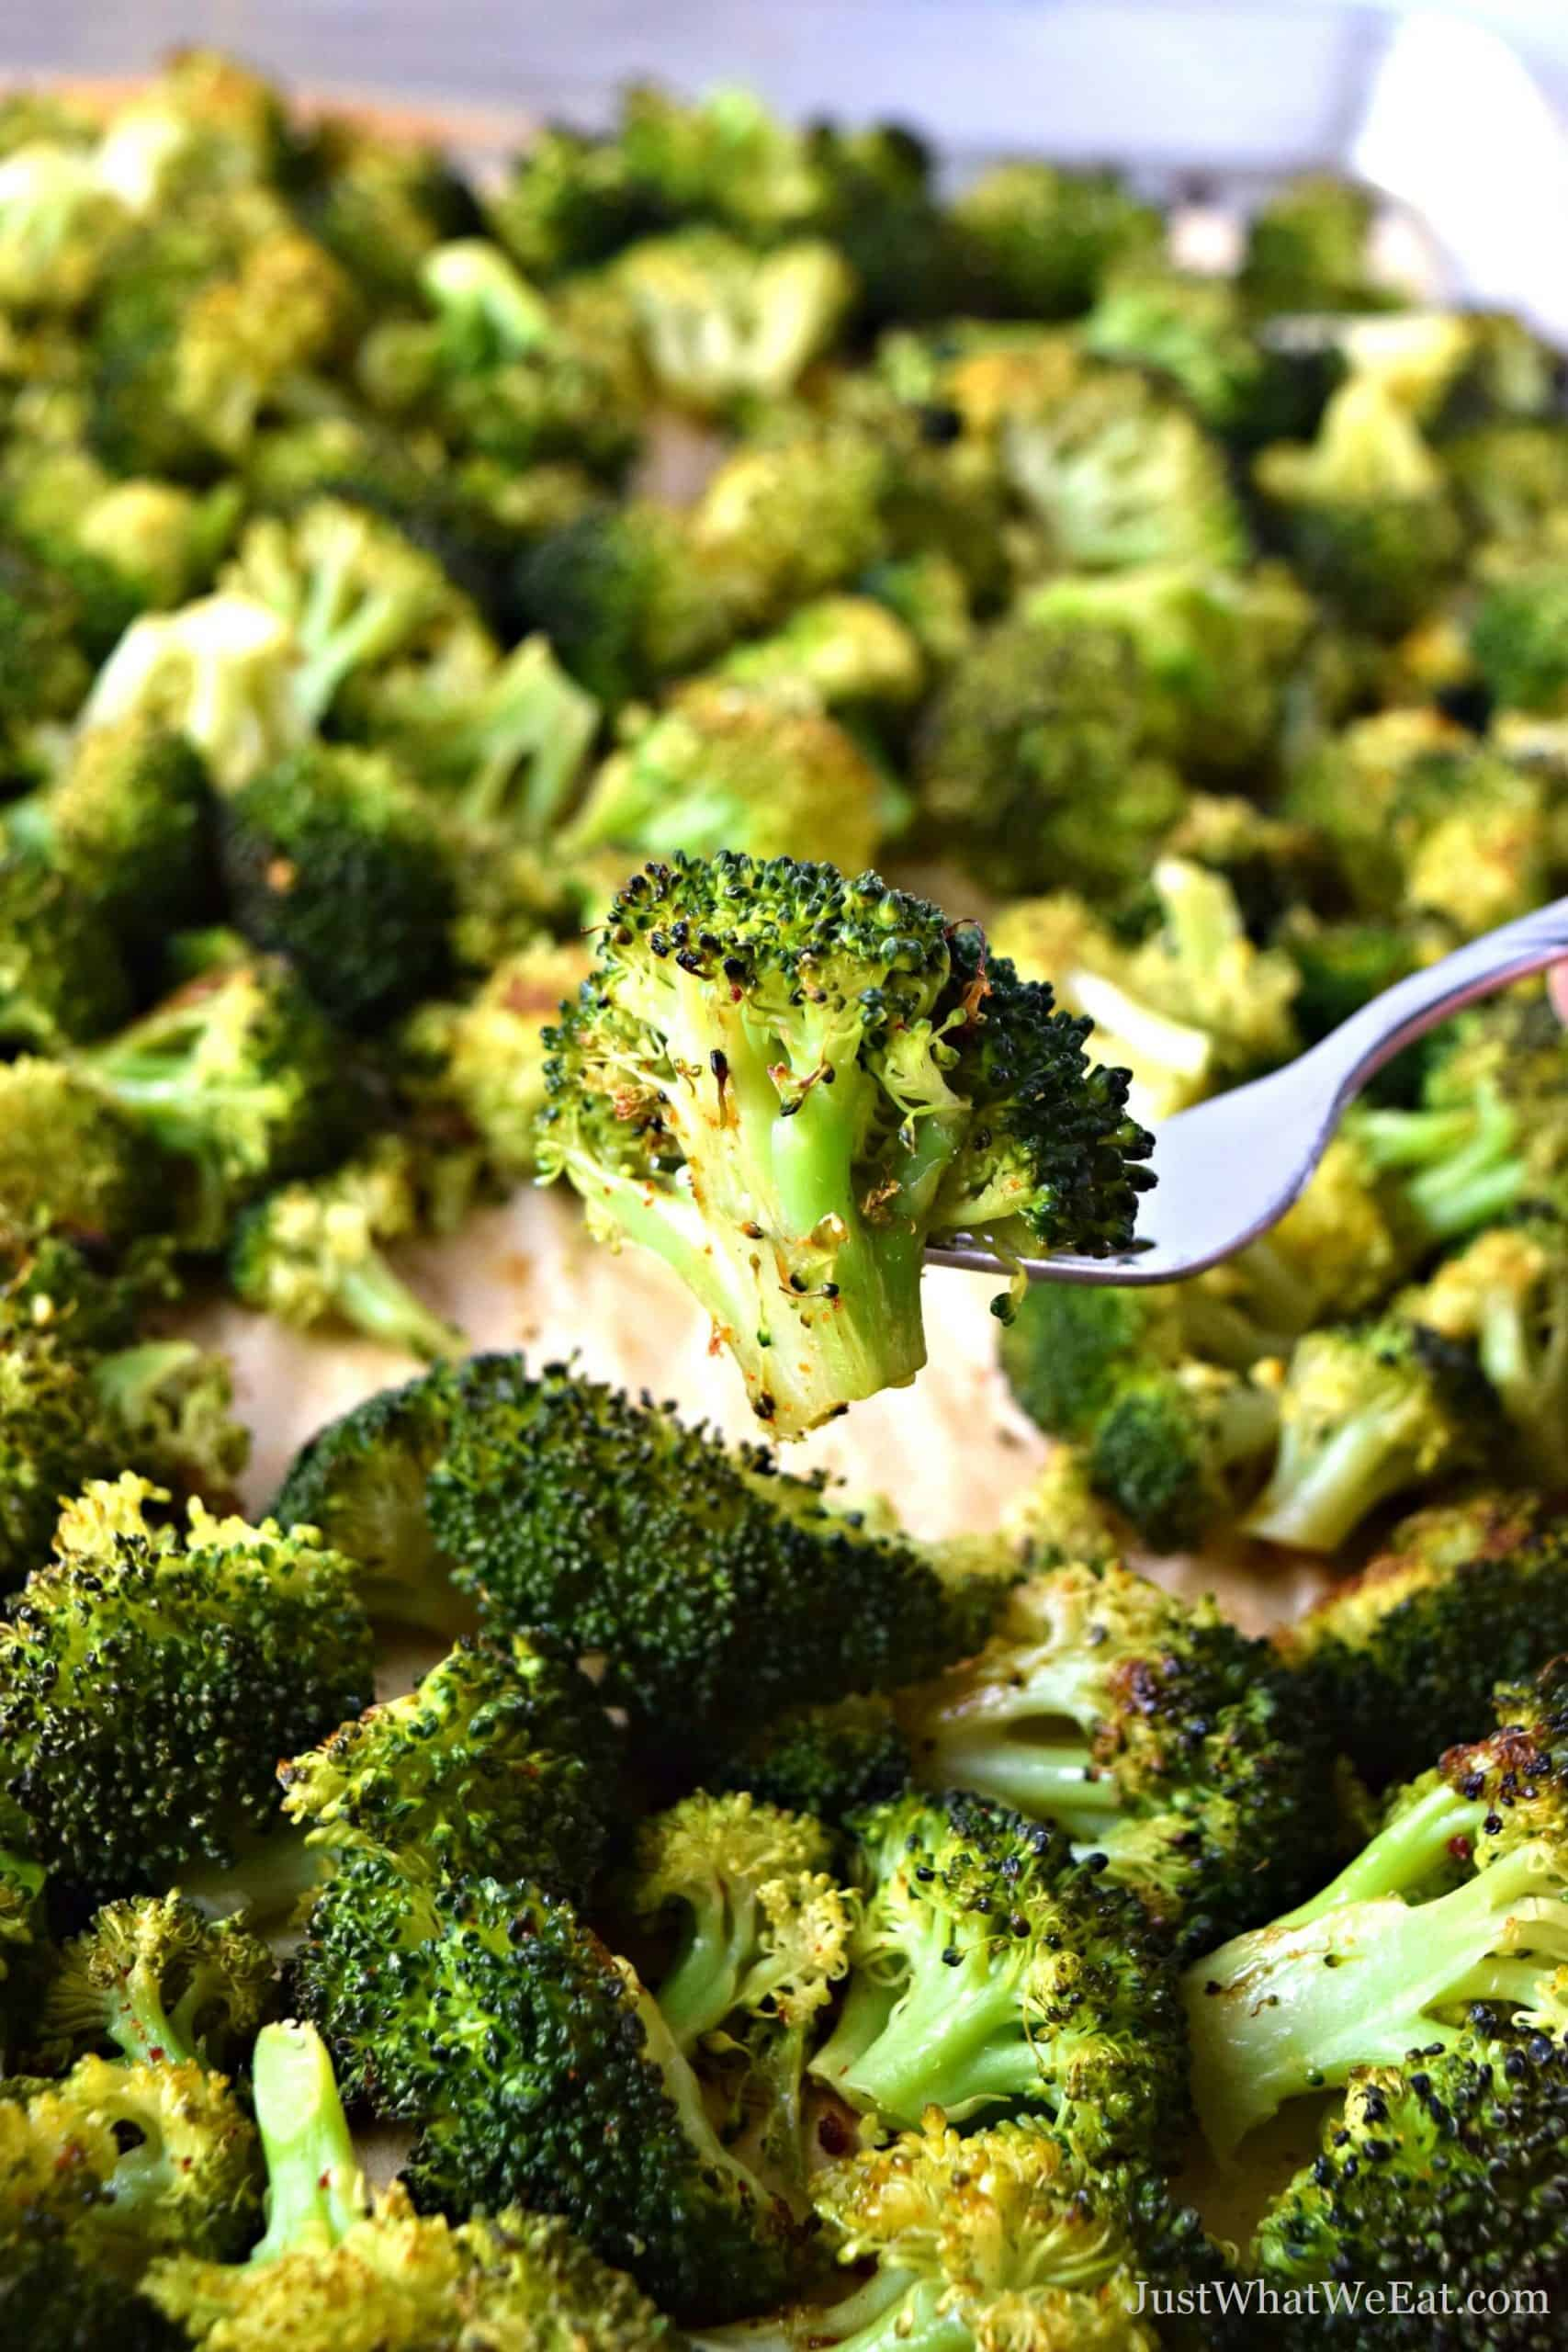 Oven Roasted Broccoli Gluten Free Vegan Just What We Eat